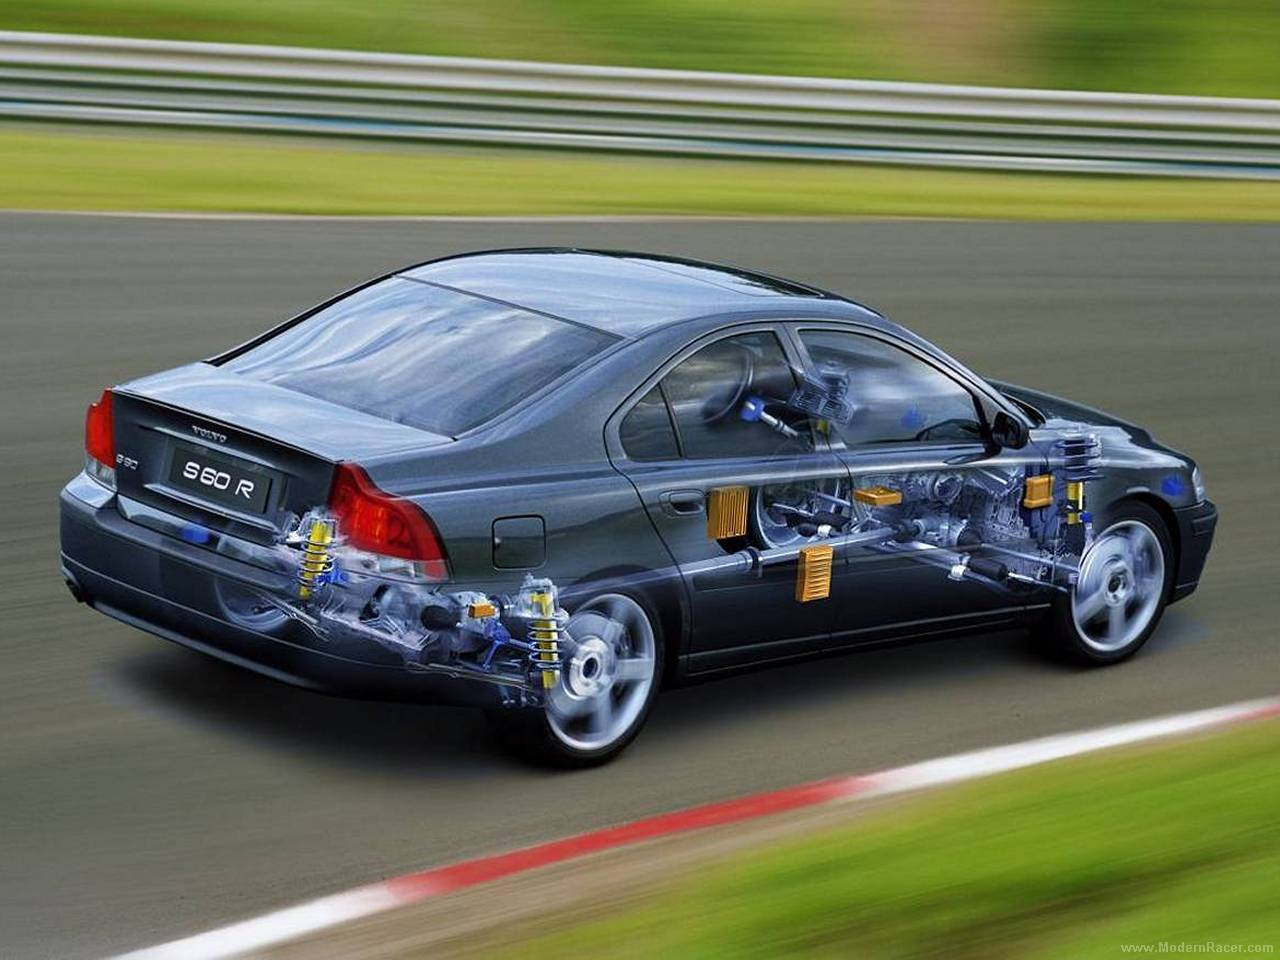 Volvo S60 2002 Tuning >> Volvo S60 R - Car Cutaway - Modern Racer - Features